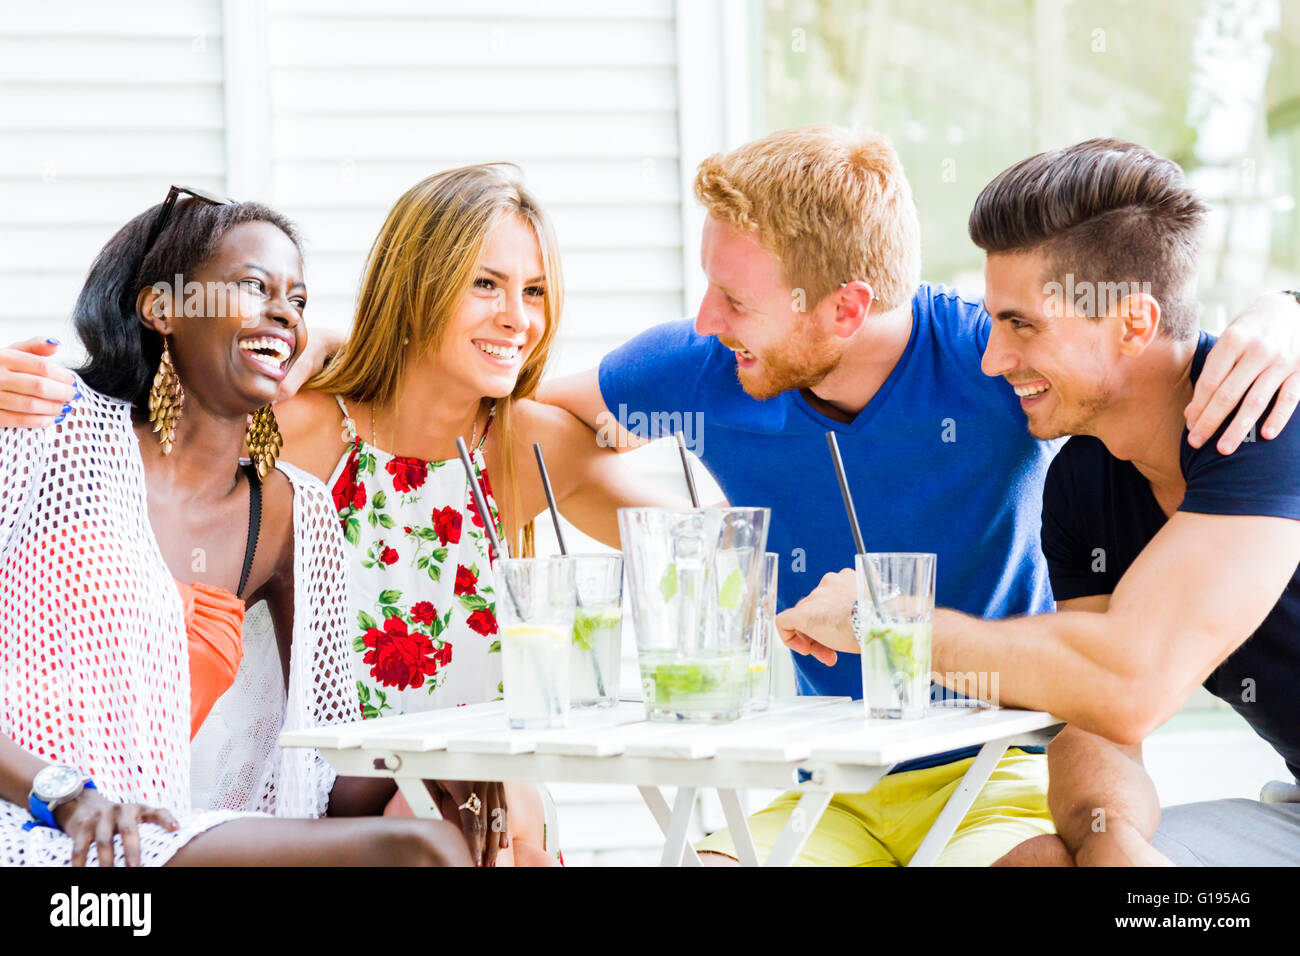 Friends laughing and hugging each outher outdoors and being happy - Stock Image